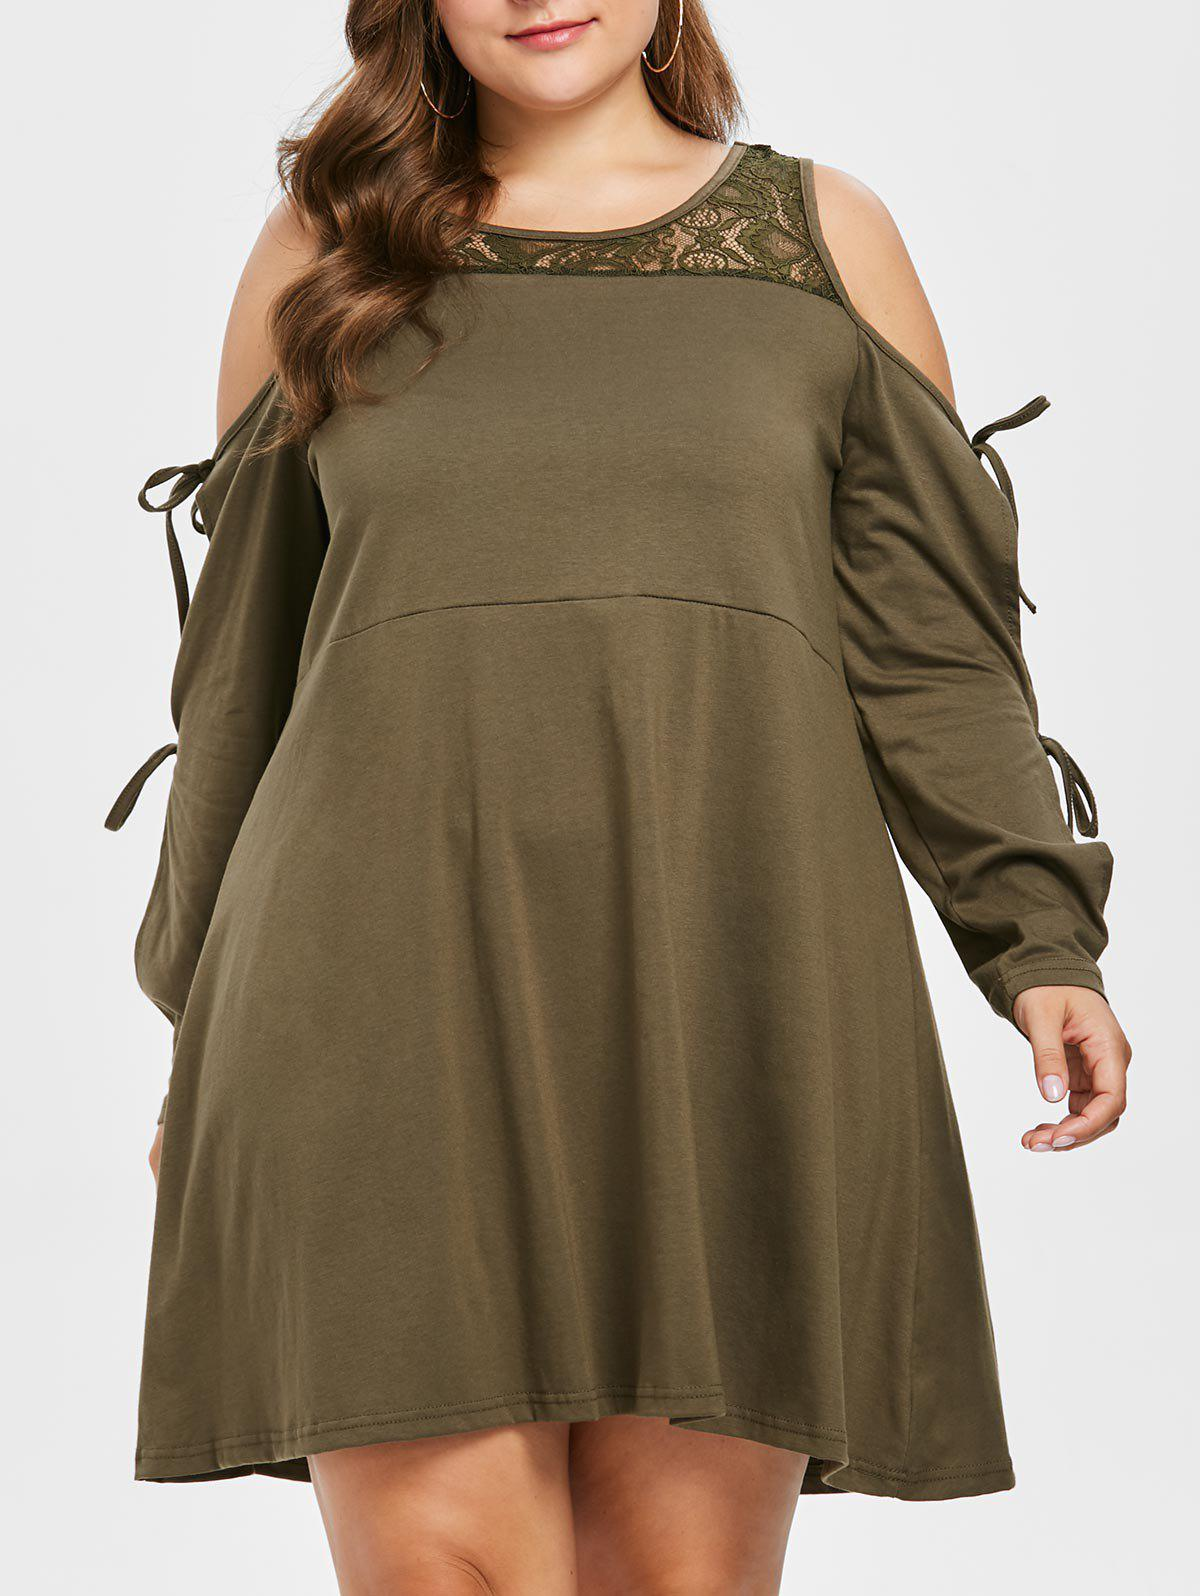 New Plus Size Long Sleeve Lace Trapeze Dress